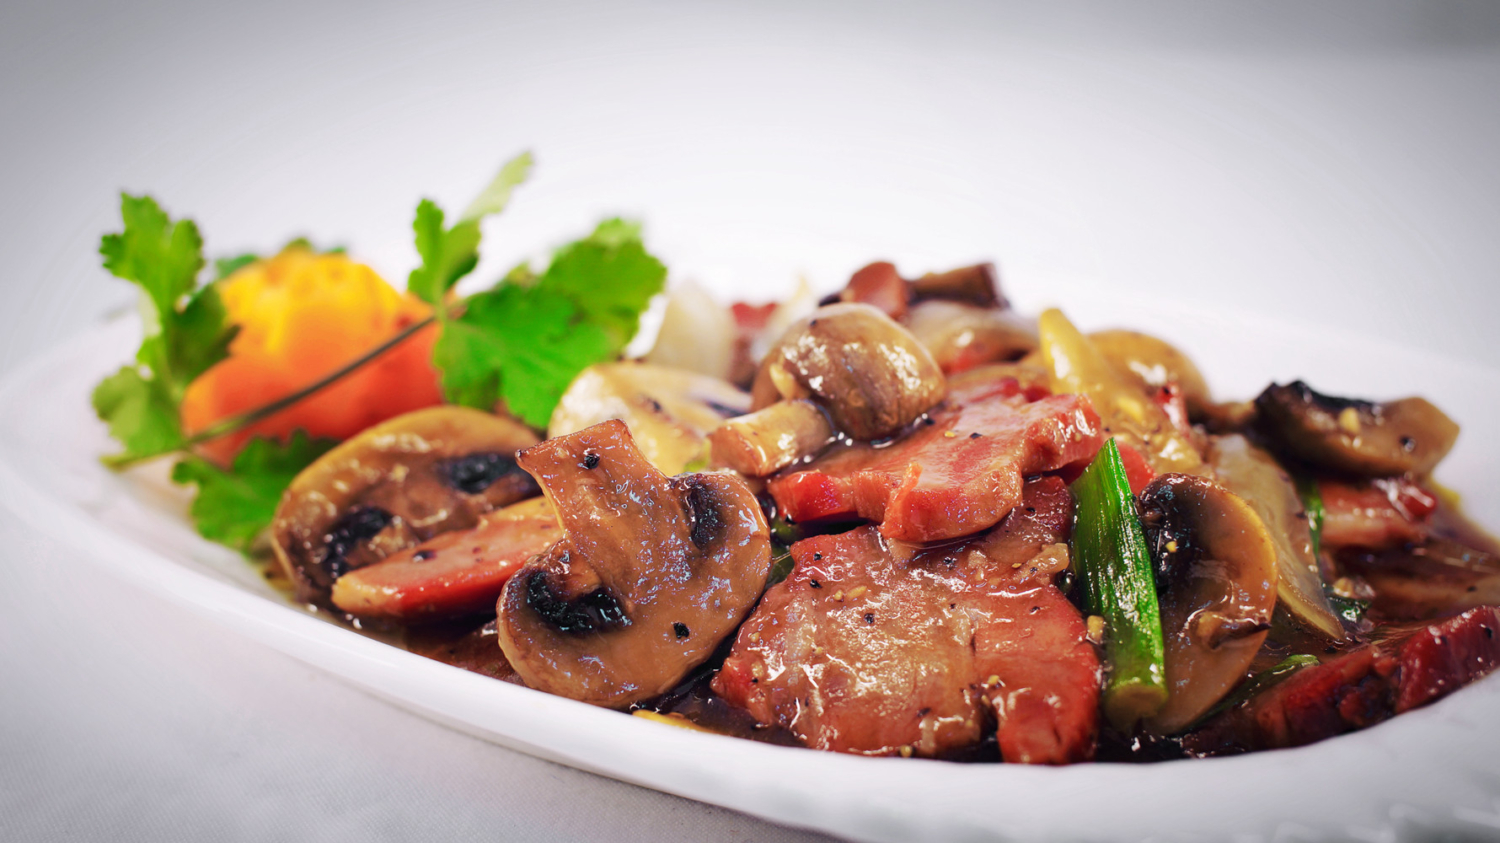 Char Siu(Roast Pork) with Mushroom & Black Pepper Sauce from Chinese Restaurant in Gosforth NE3 Newcastle upon Tyne